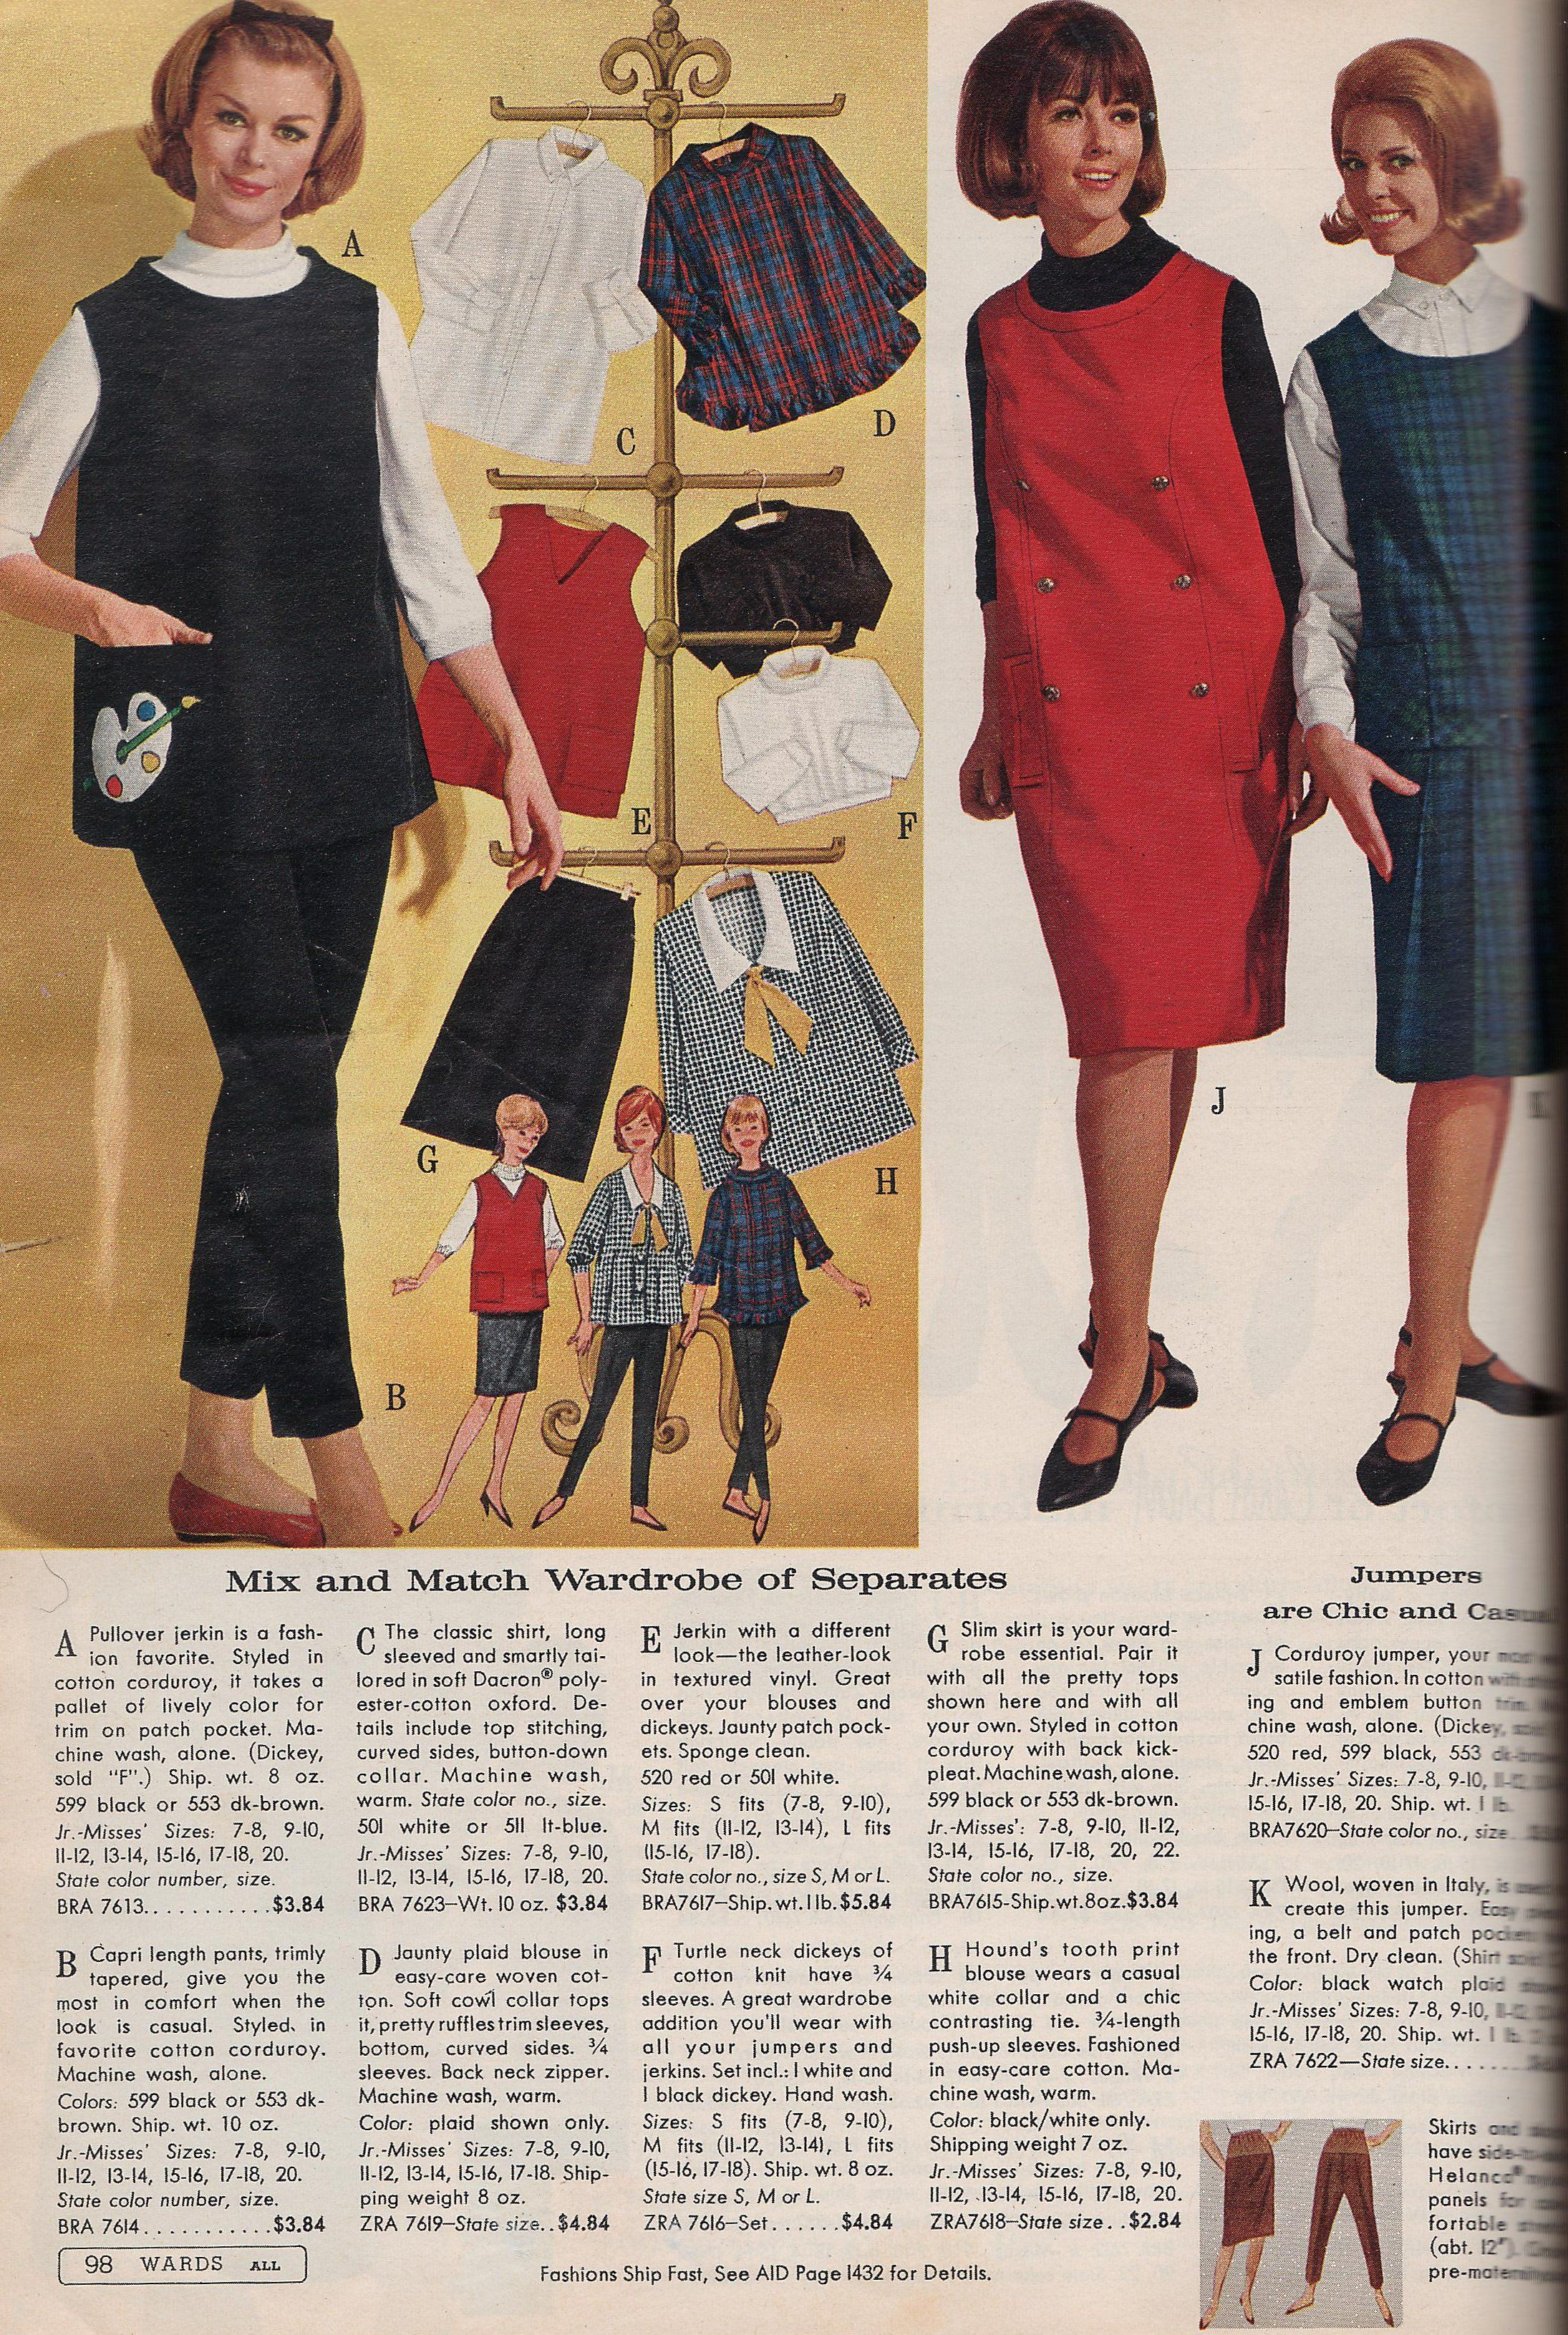 Maternity clothes 1960 1972 60 s fashion vintage and clothes maternity clothes 1960 1972 ombrellifo Choice Image